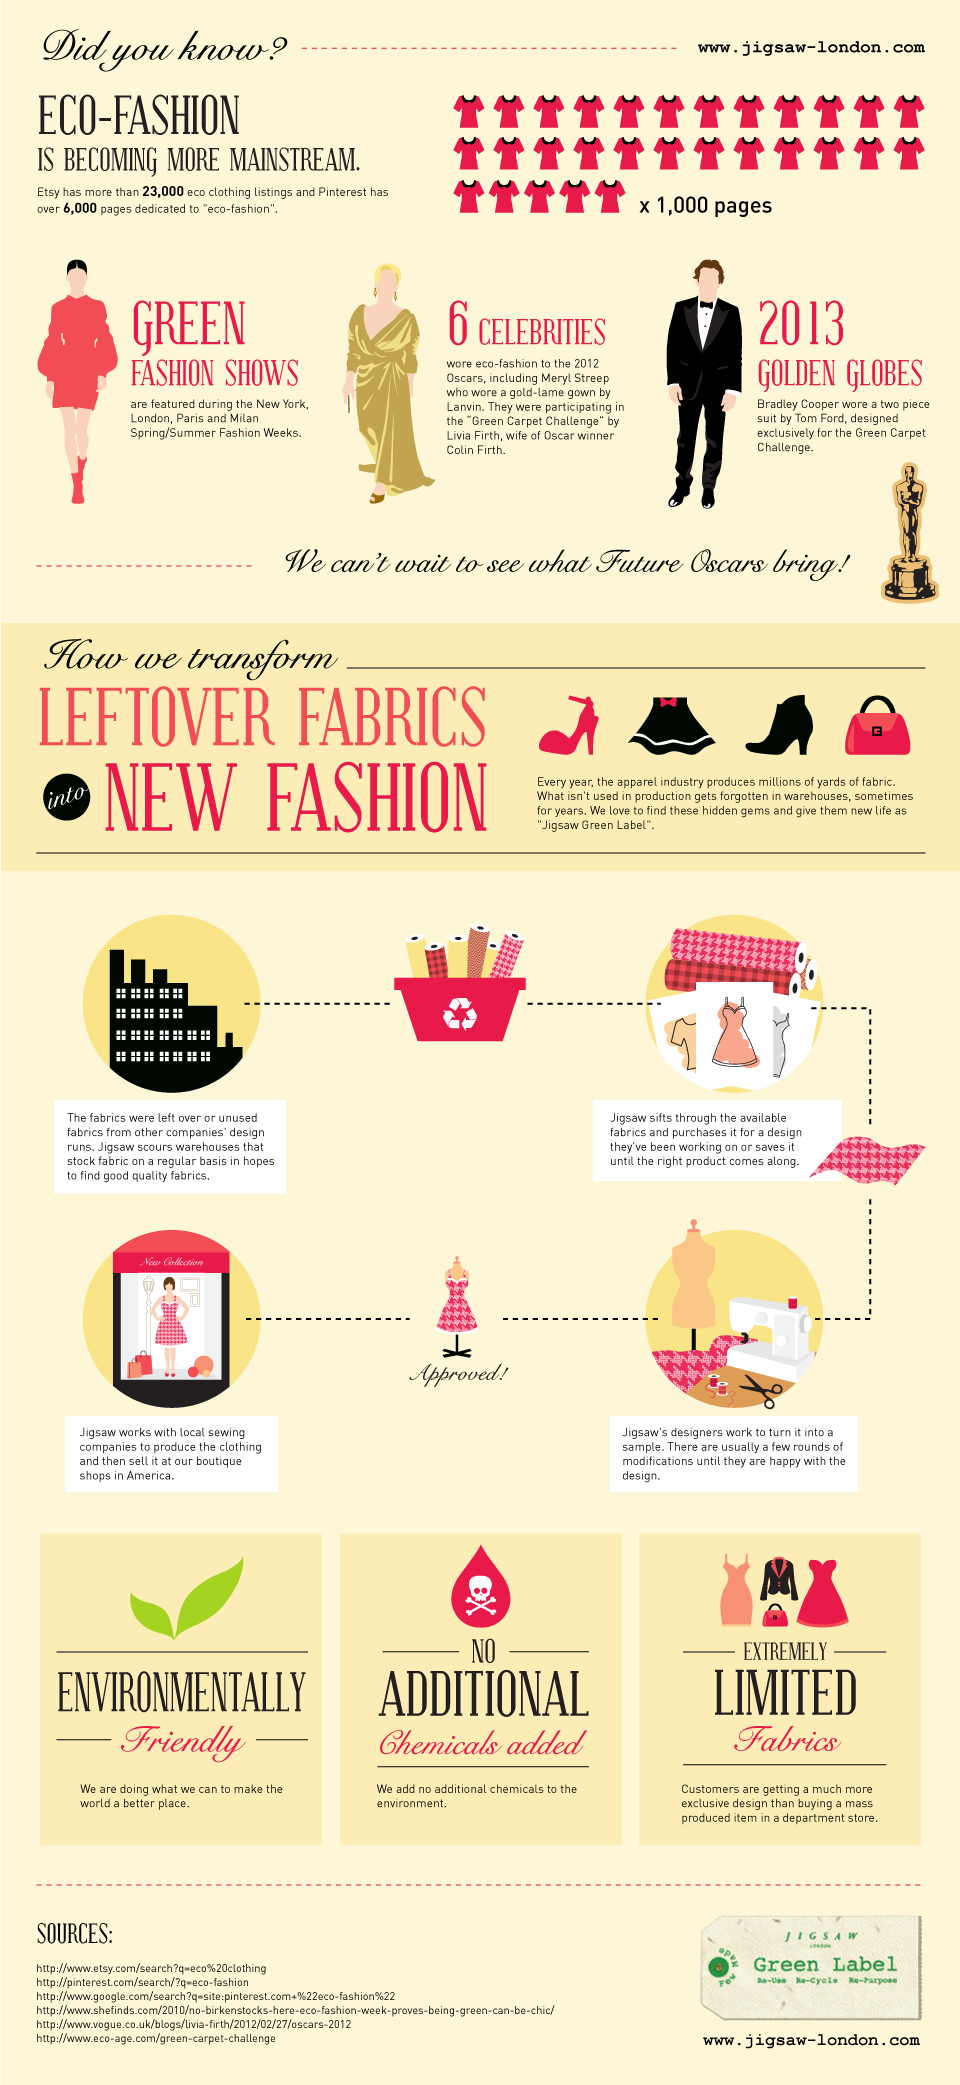 19. Eco Fashion is turning Mainstream